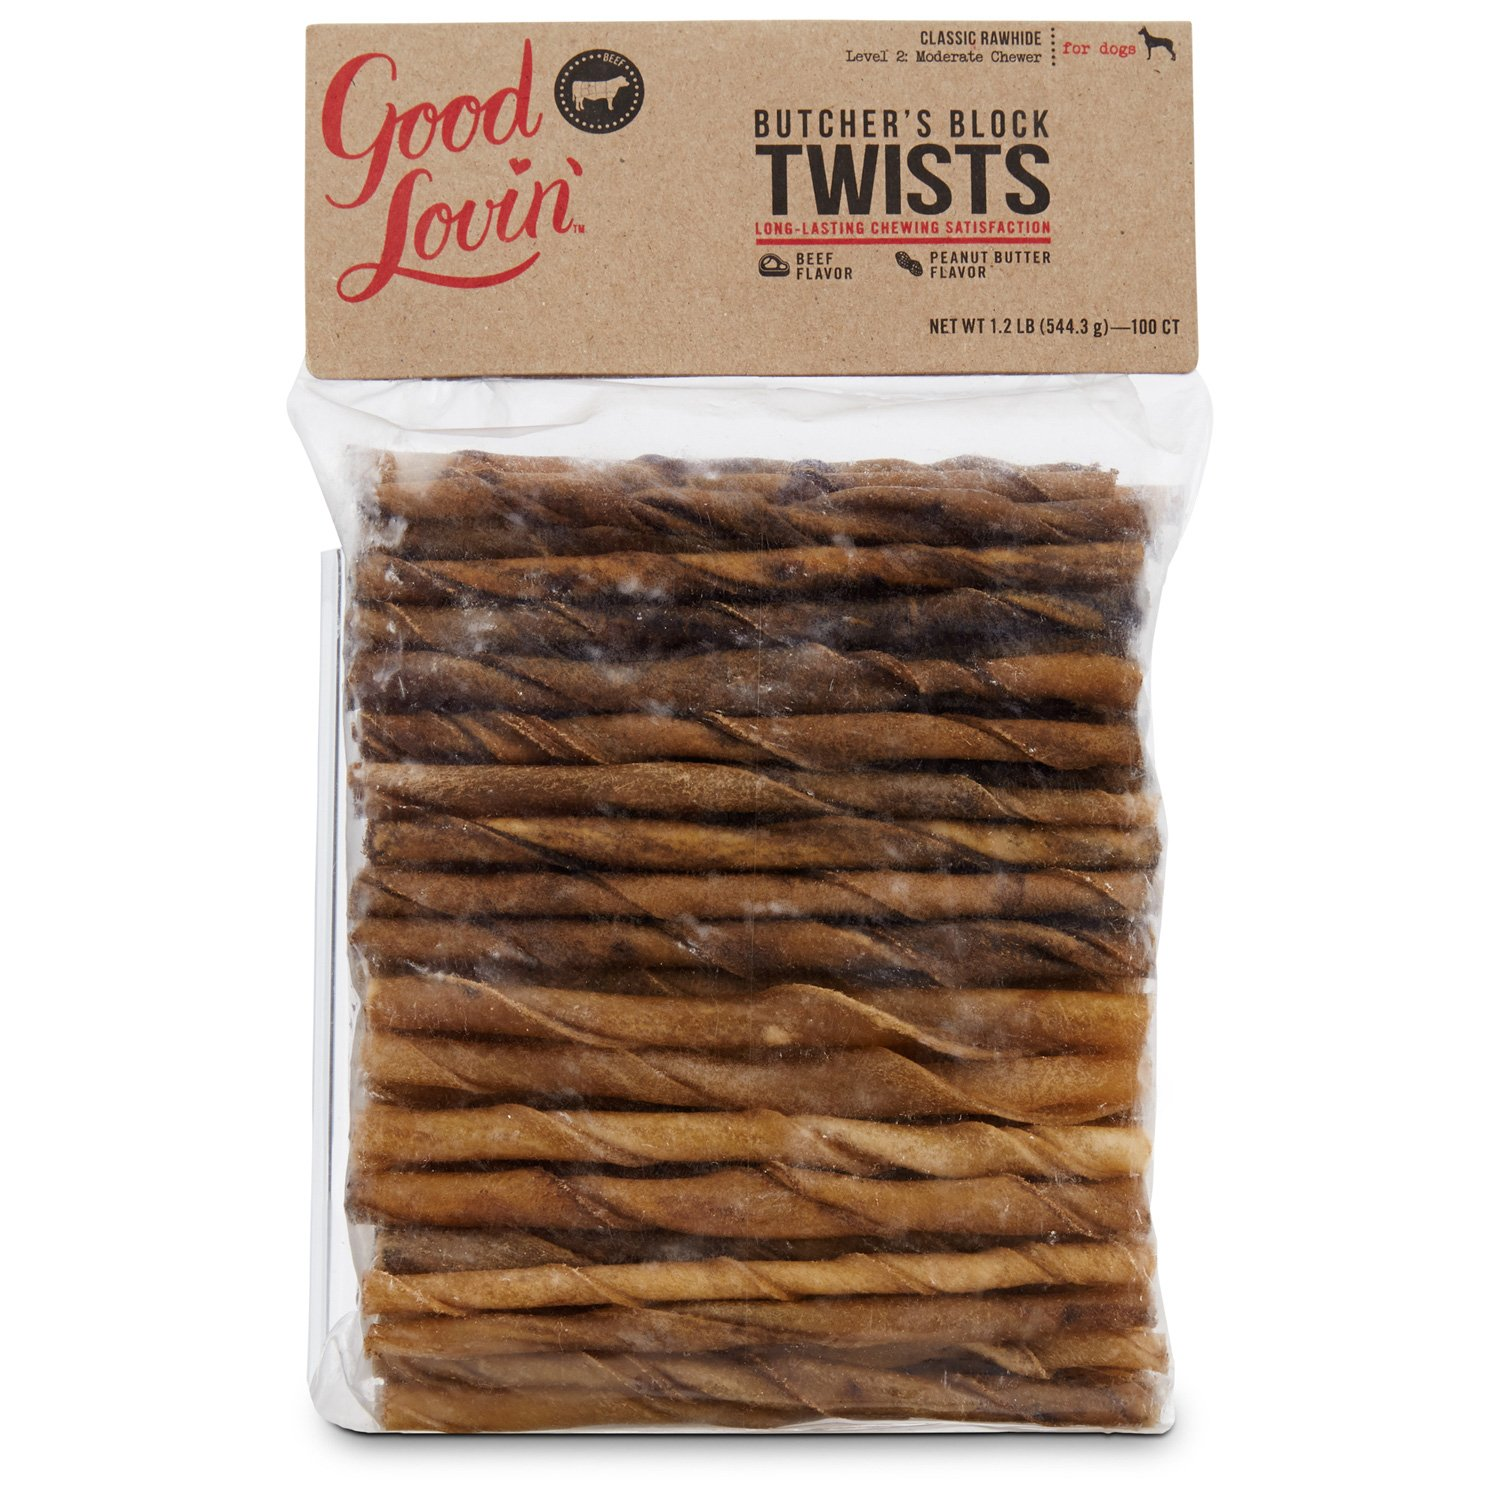 Good Lovin' Beef & Peanut Butter Twists Dog Chews